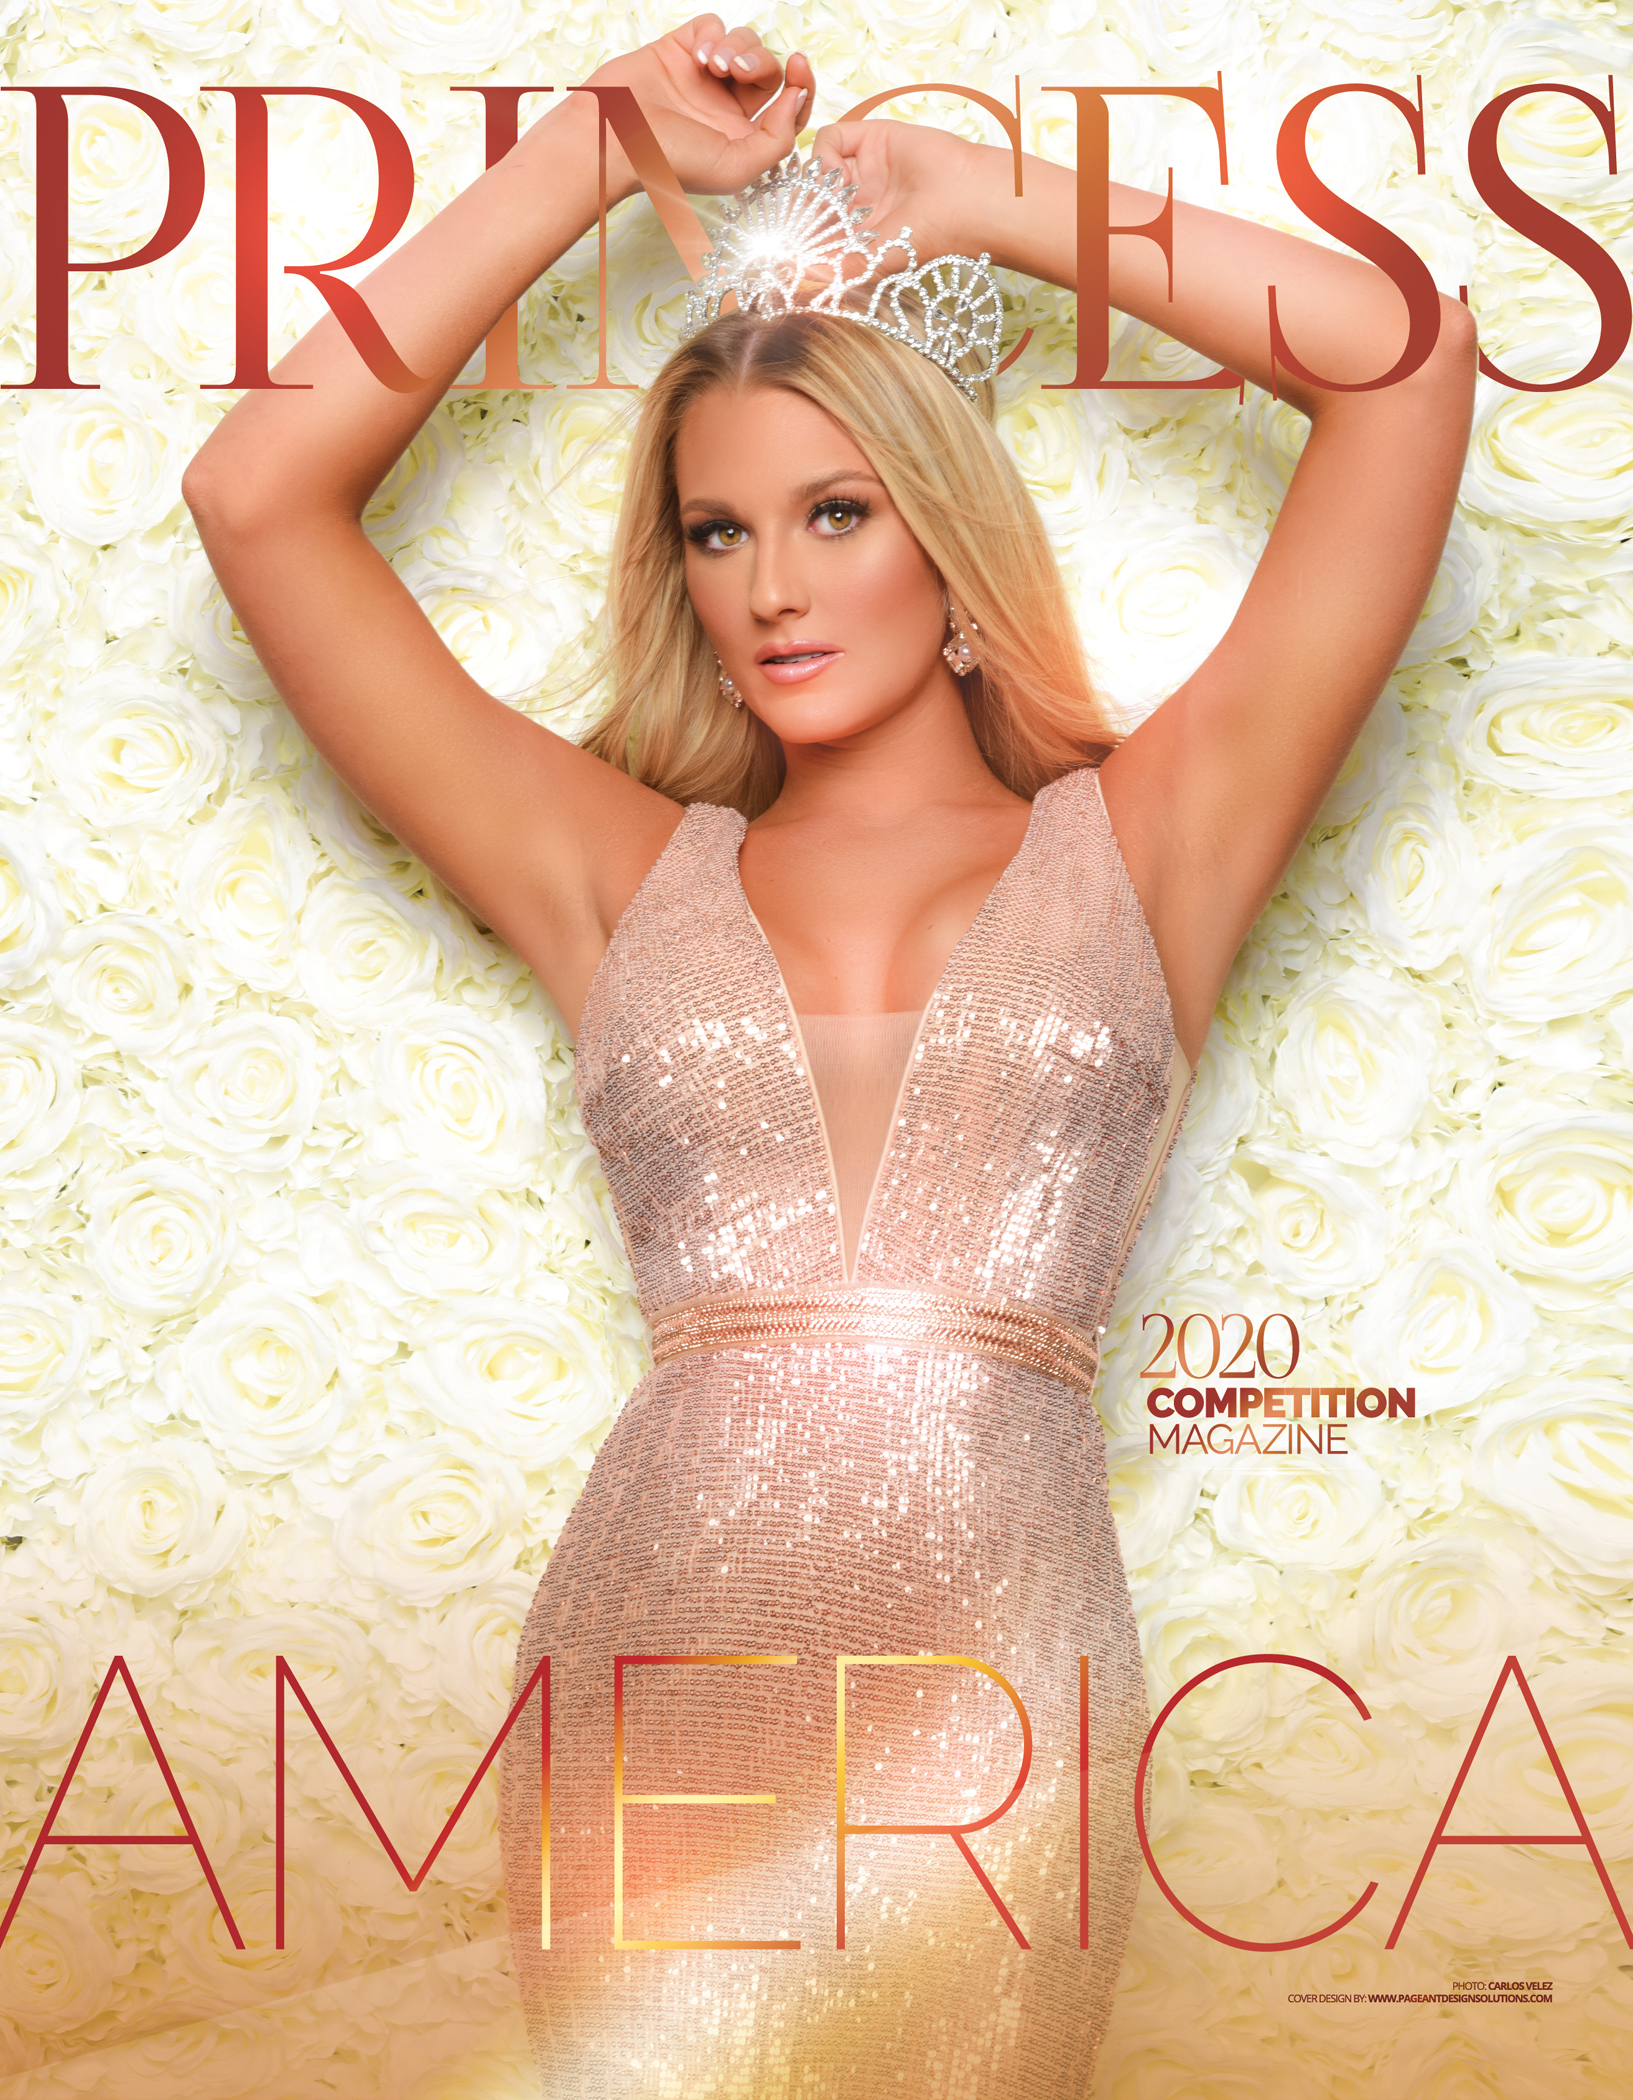 Princess America 2020 FRONT COVER